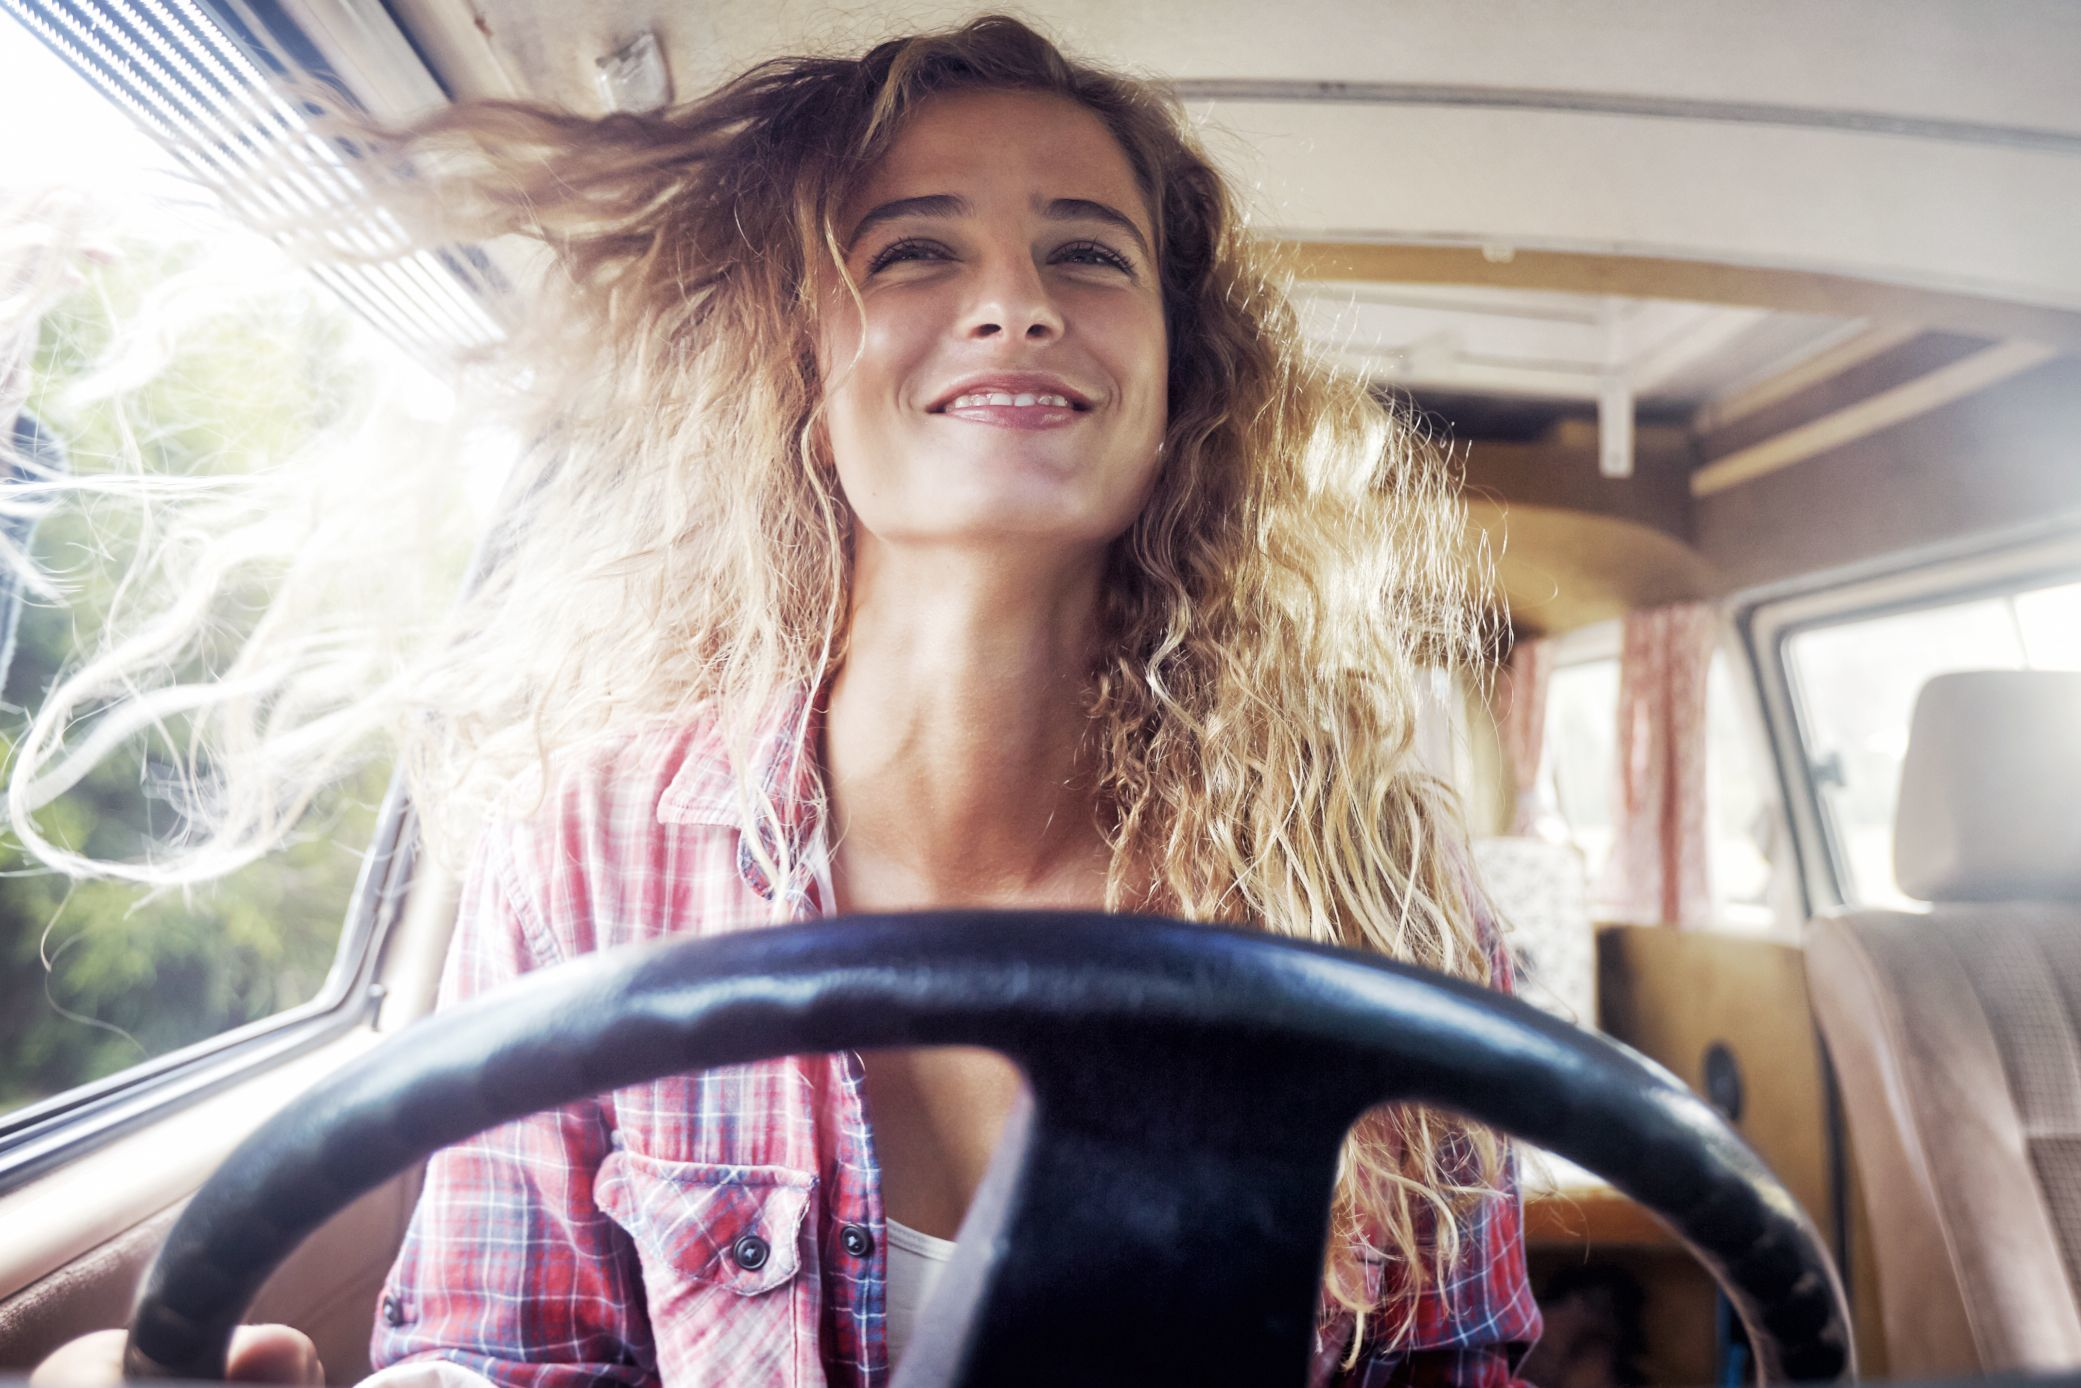 Portrait of a woman sitting at the wheel of her vw camper van smiling. Her hair is blowing in the wind. Shot as part of a self portrait story by Cape Town Photographer Jessica Zumpfe